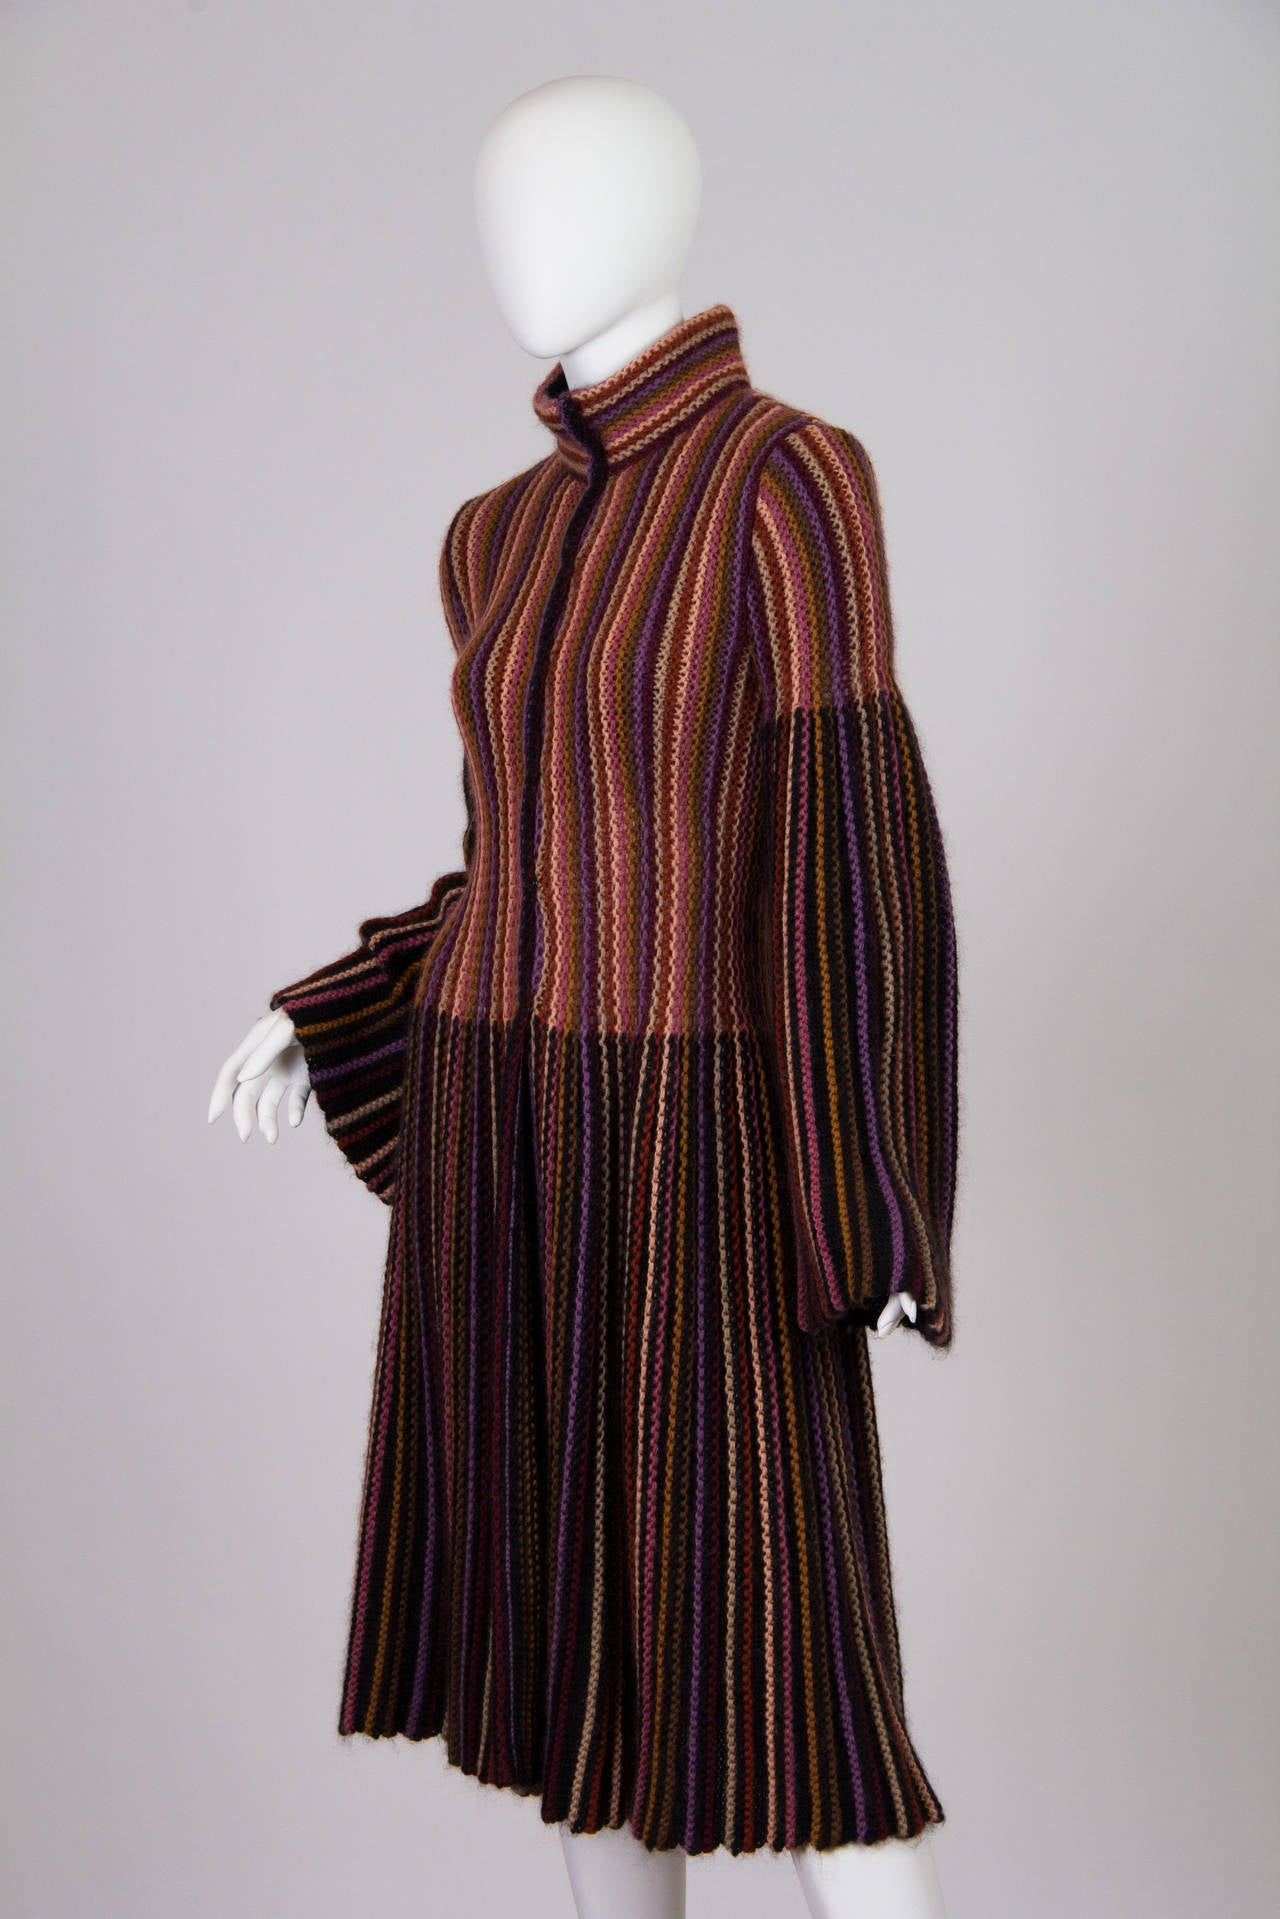 Blanket soft Missoni Mohair and Wool Knit Coat. 2